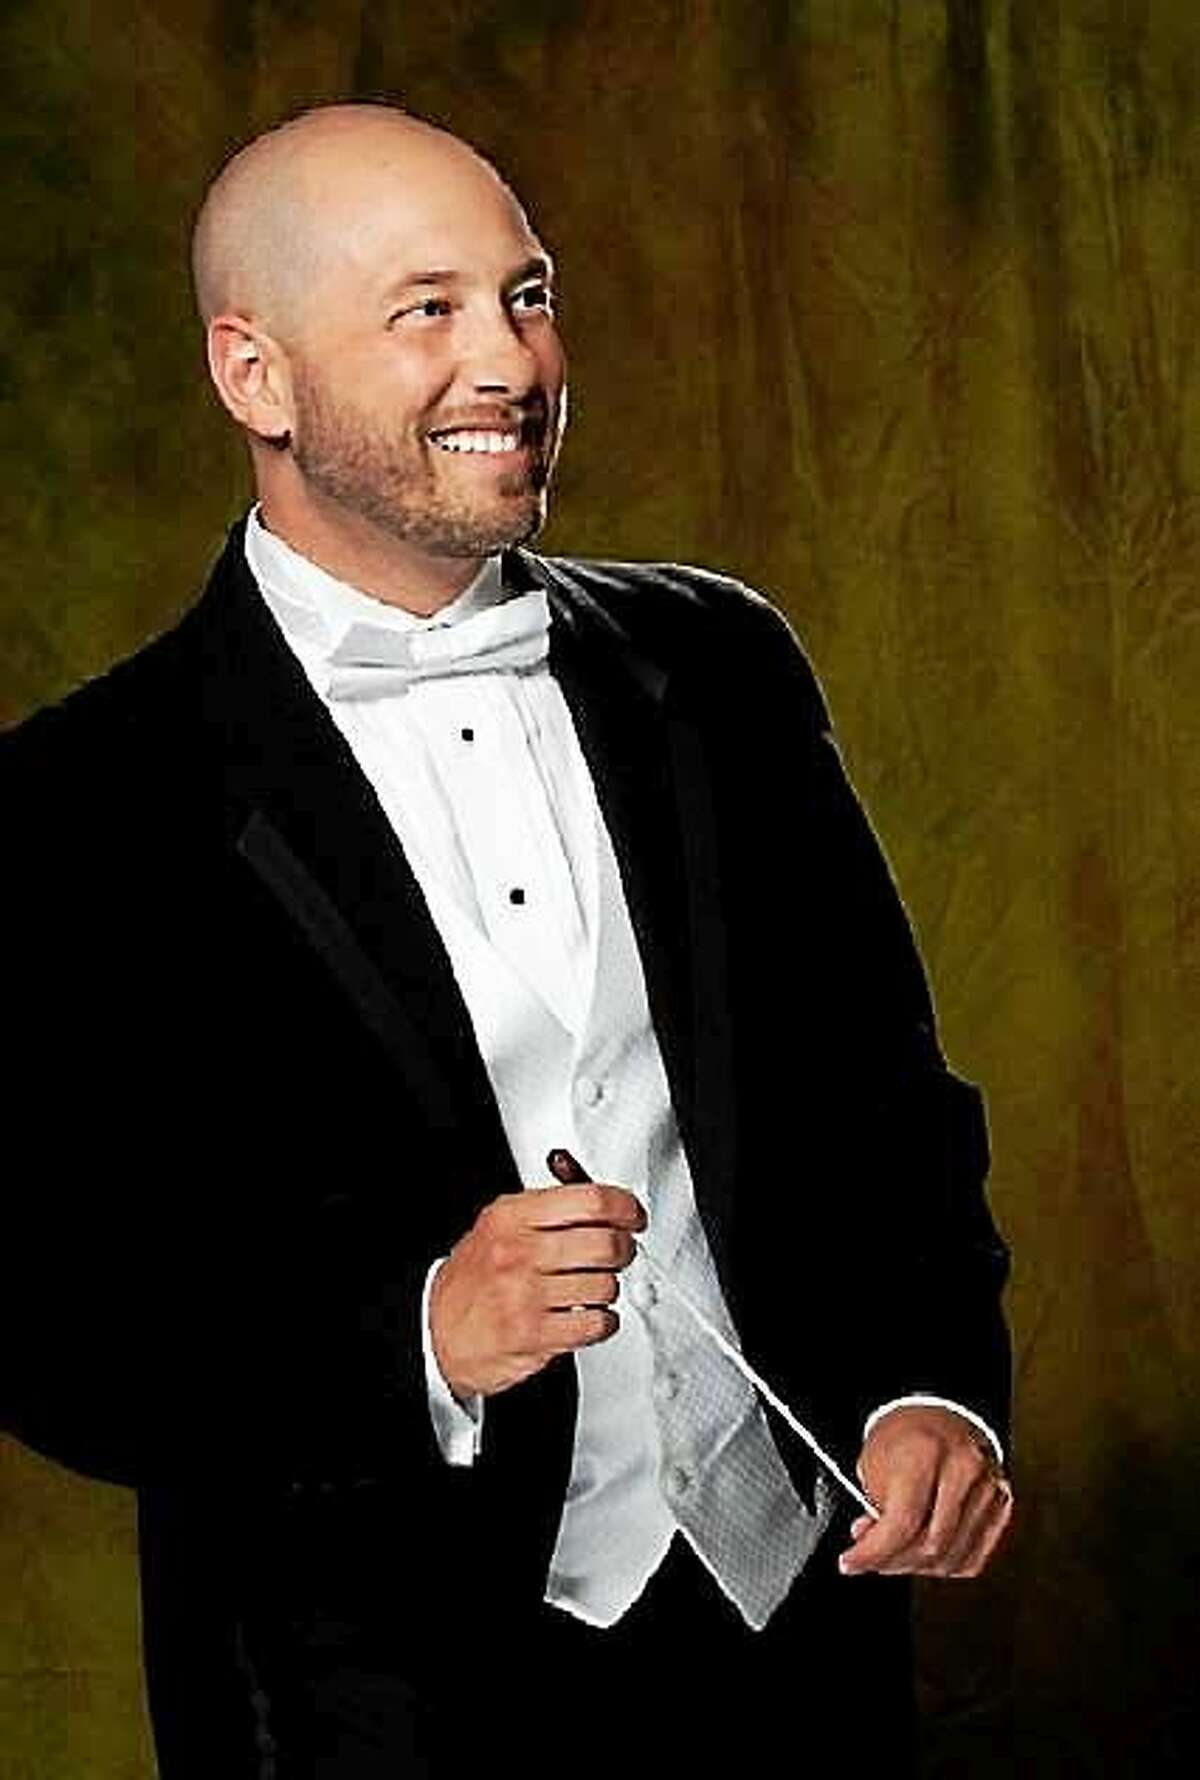 Contributed photo CONCORAís Summer Festival 2015, July 19-25, will bring renowned choral conductor Joseph DíEugenio to the Summer Festival podium for the first time.